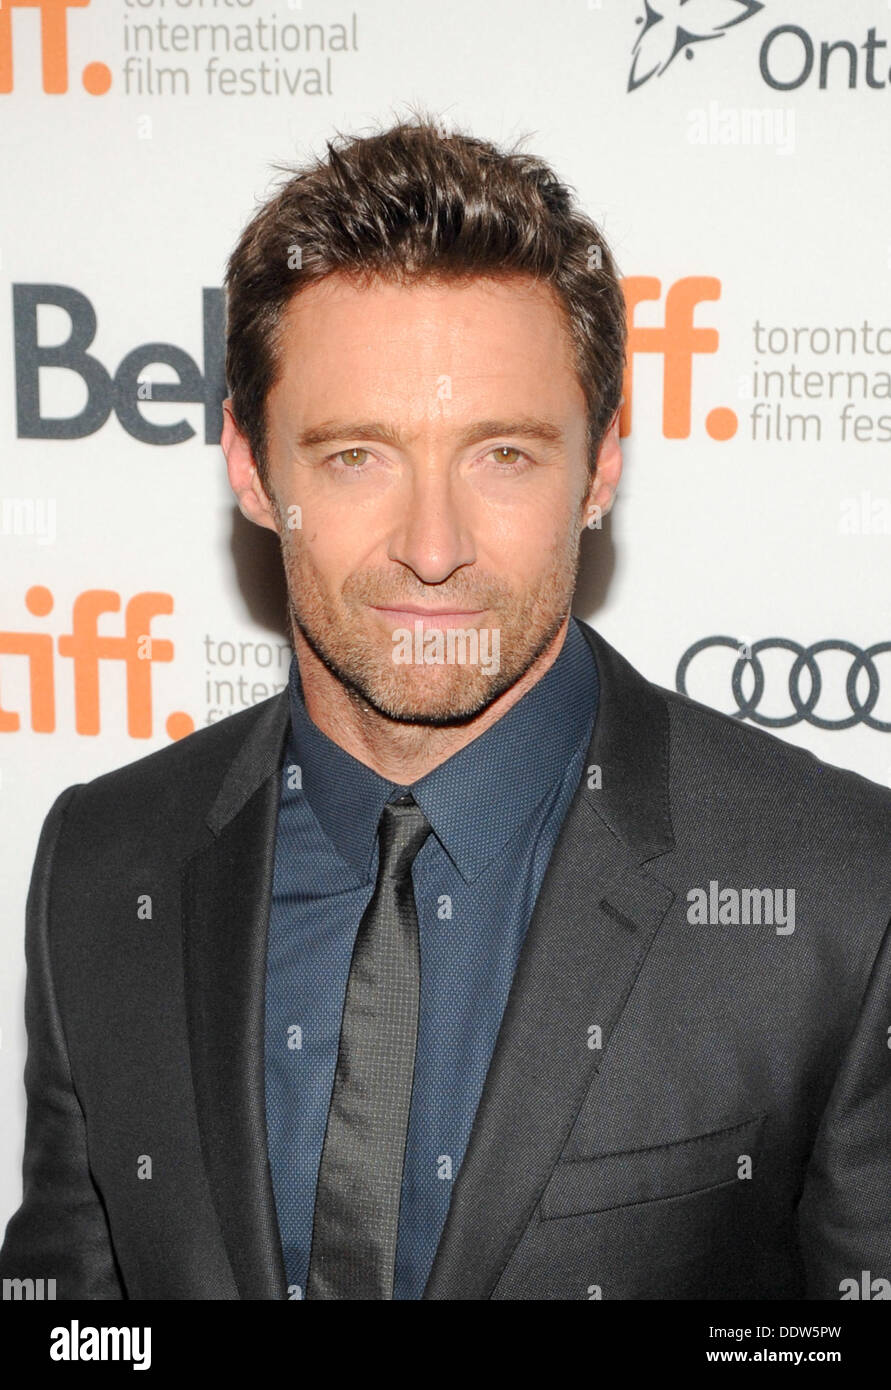 Toronto, Ontario, Canada. 6th Sep, 2013. Actor HUGH JACKMAN arrives at the 'Prisoners' Premiere during the 2013 Toronto International Film Festival held at The Elgin on September 6, 2013 in Toronto, Canada Credit:  Igor Vidyashev/ZUMAPRESS.com/Alamy Live News - Stock Image